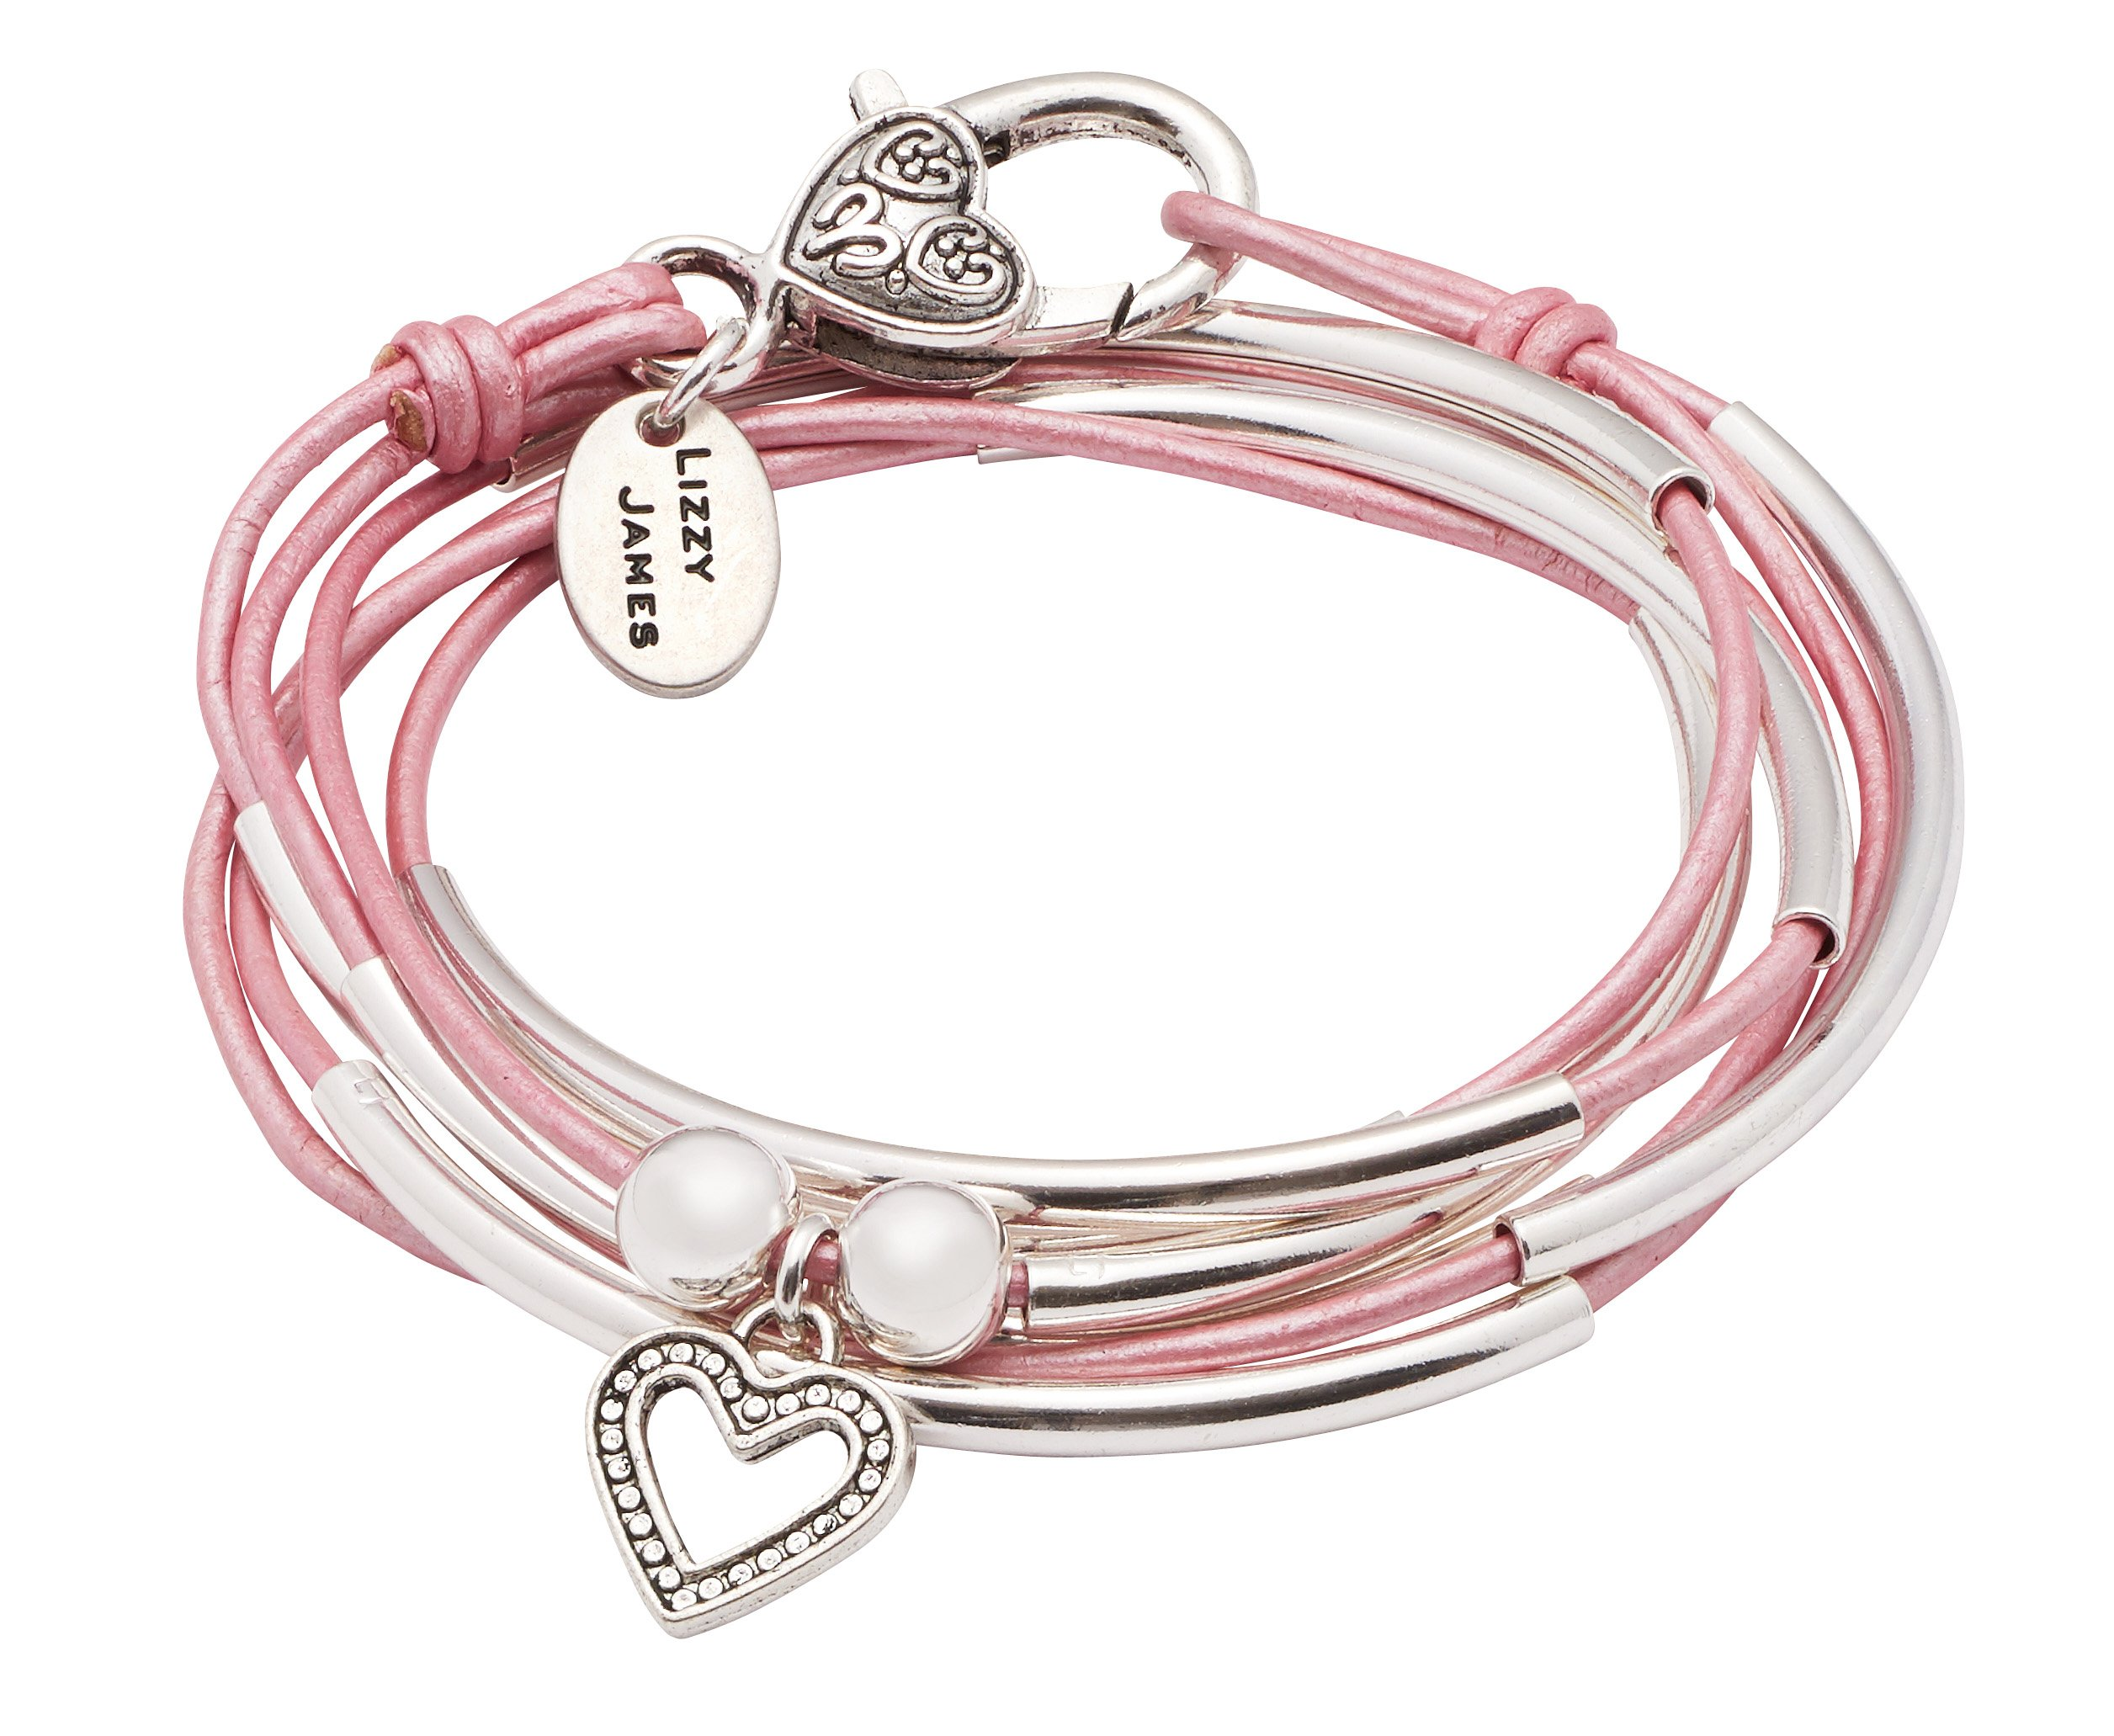 Lizzy James Girlfriend Wrap Silverplated 2 Strand Metallic Pink Leather Wrap Bracelet with Dotted Heart Charm (Small)